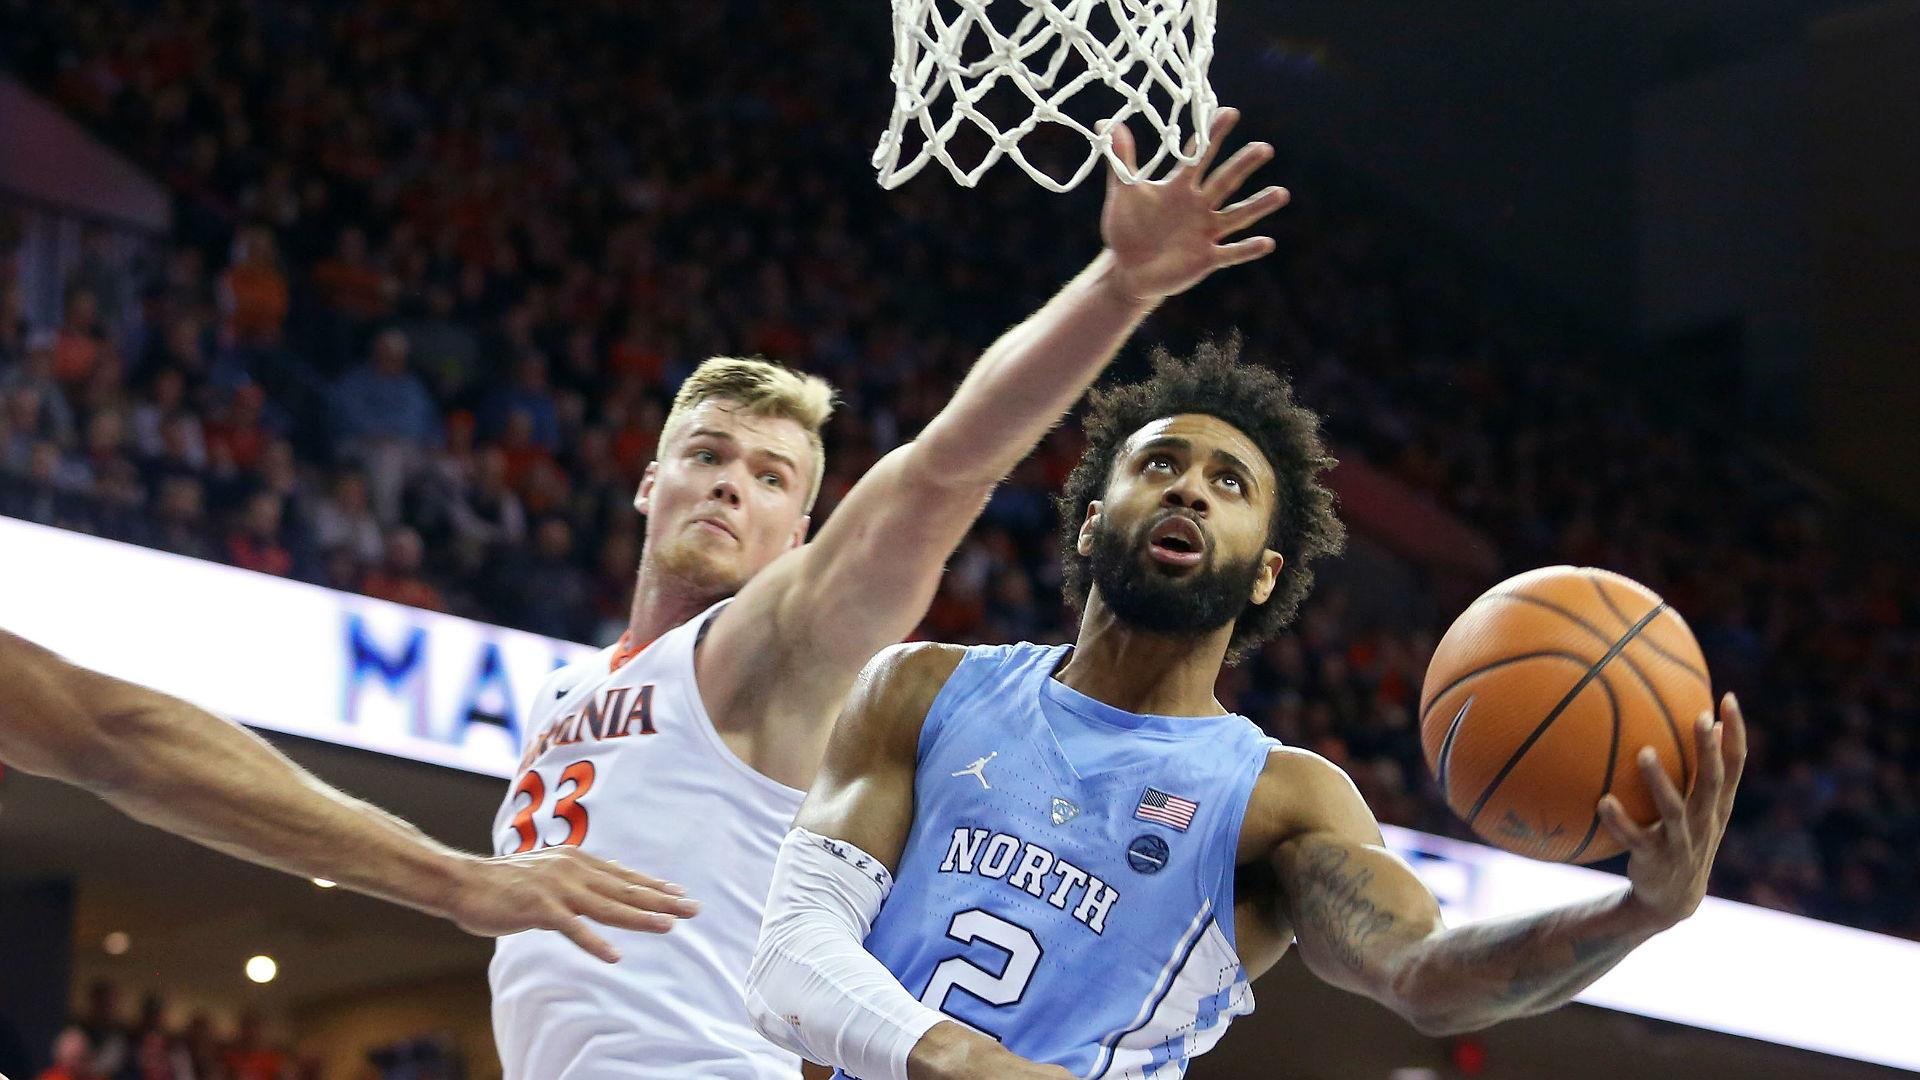 UNC vs. Virginia: Score, highlights from Virginia's ACC ...